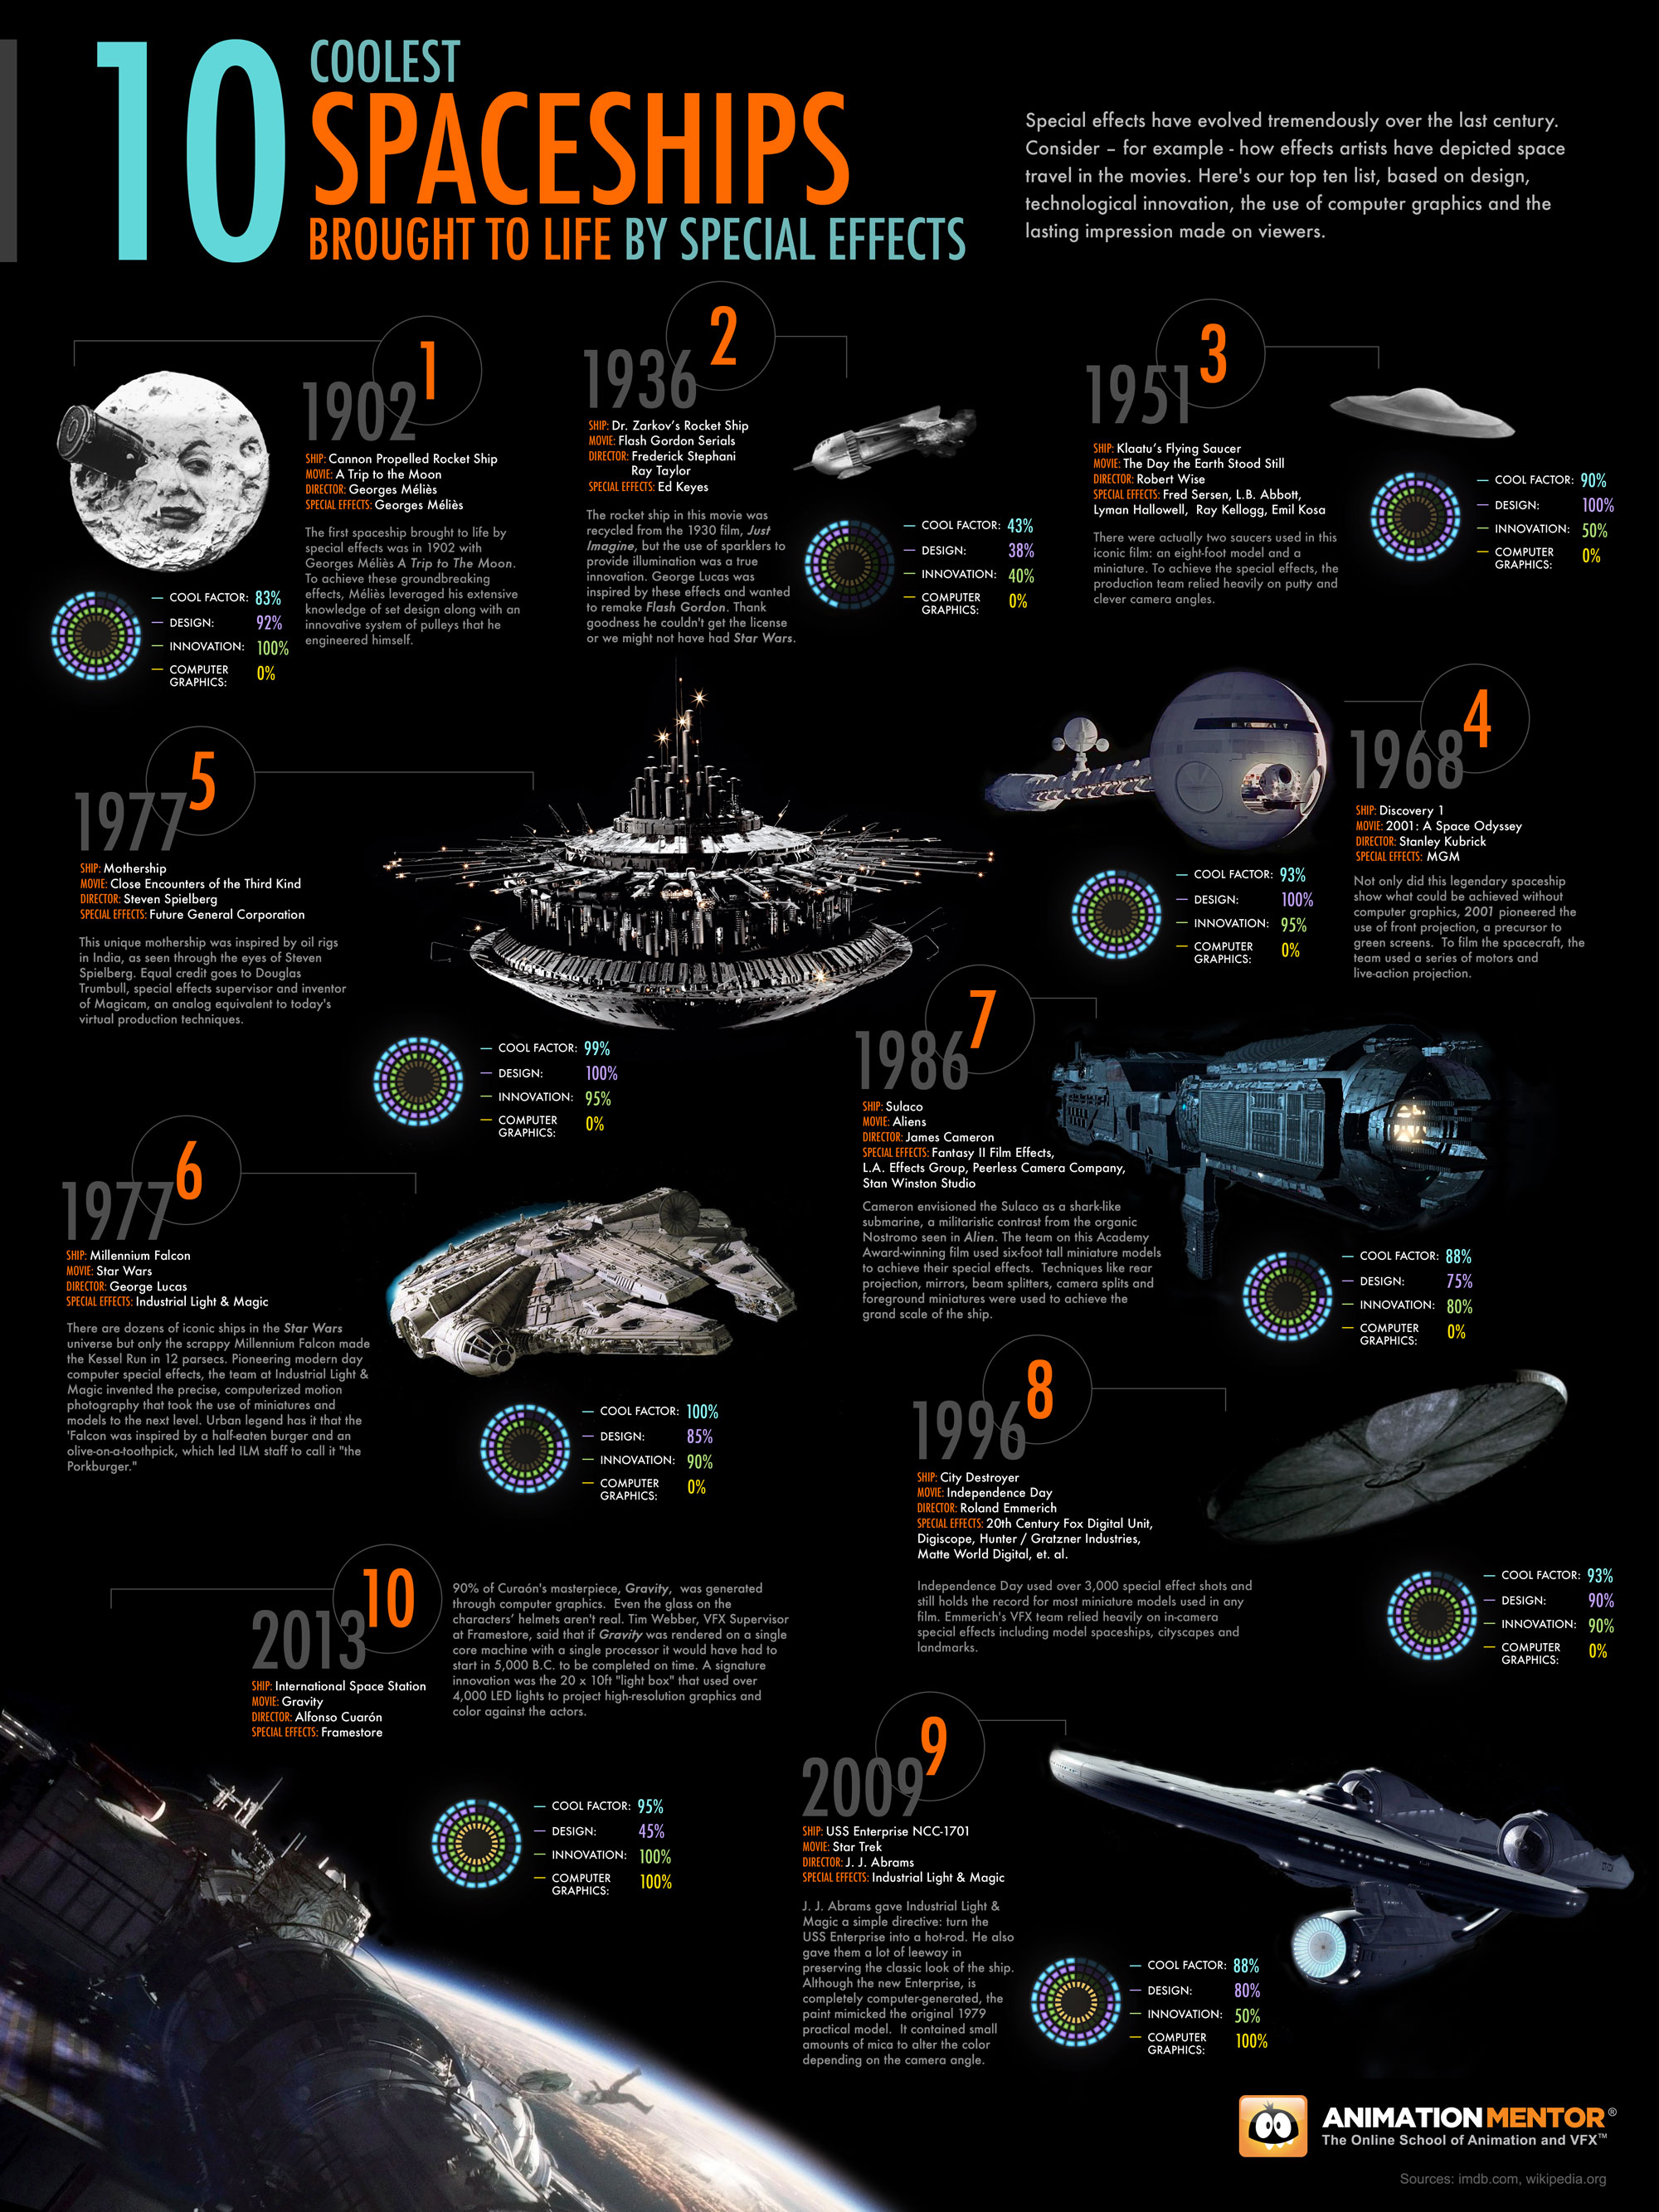 10 Coolest Special Effects Spaceships